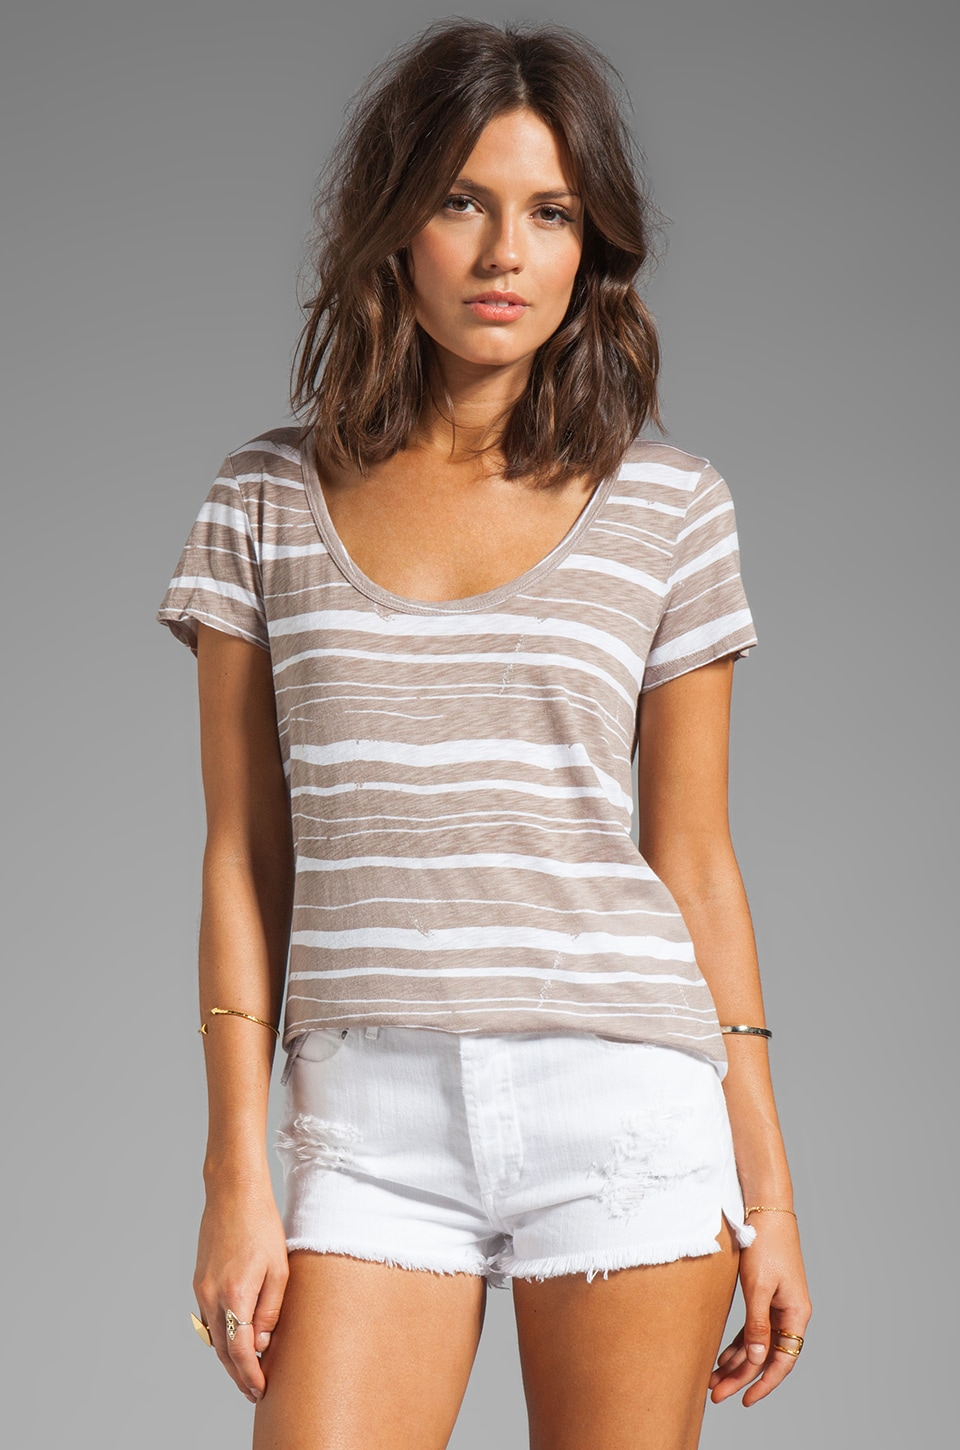 Velvet by Graham & Spencer Elsy Painted Stripe Top in Flax